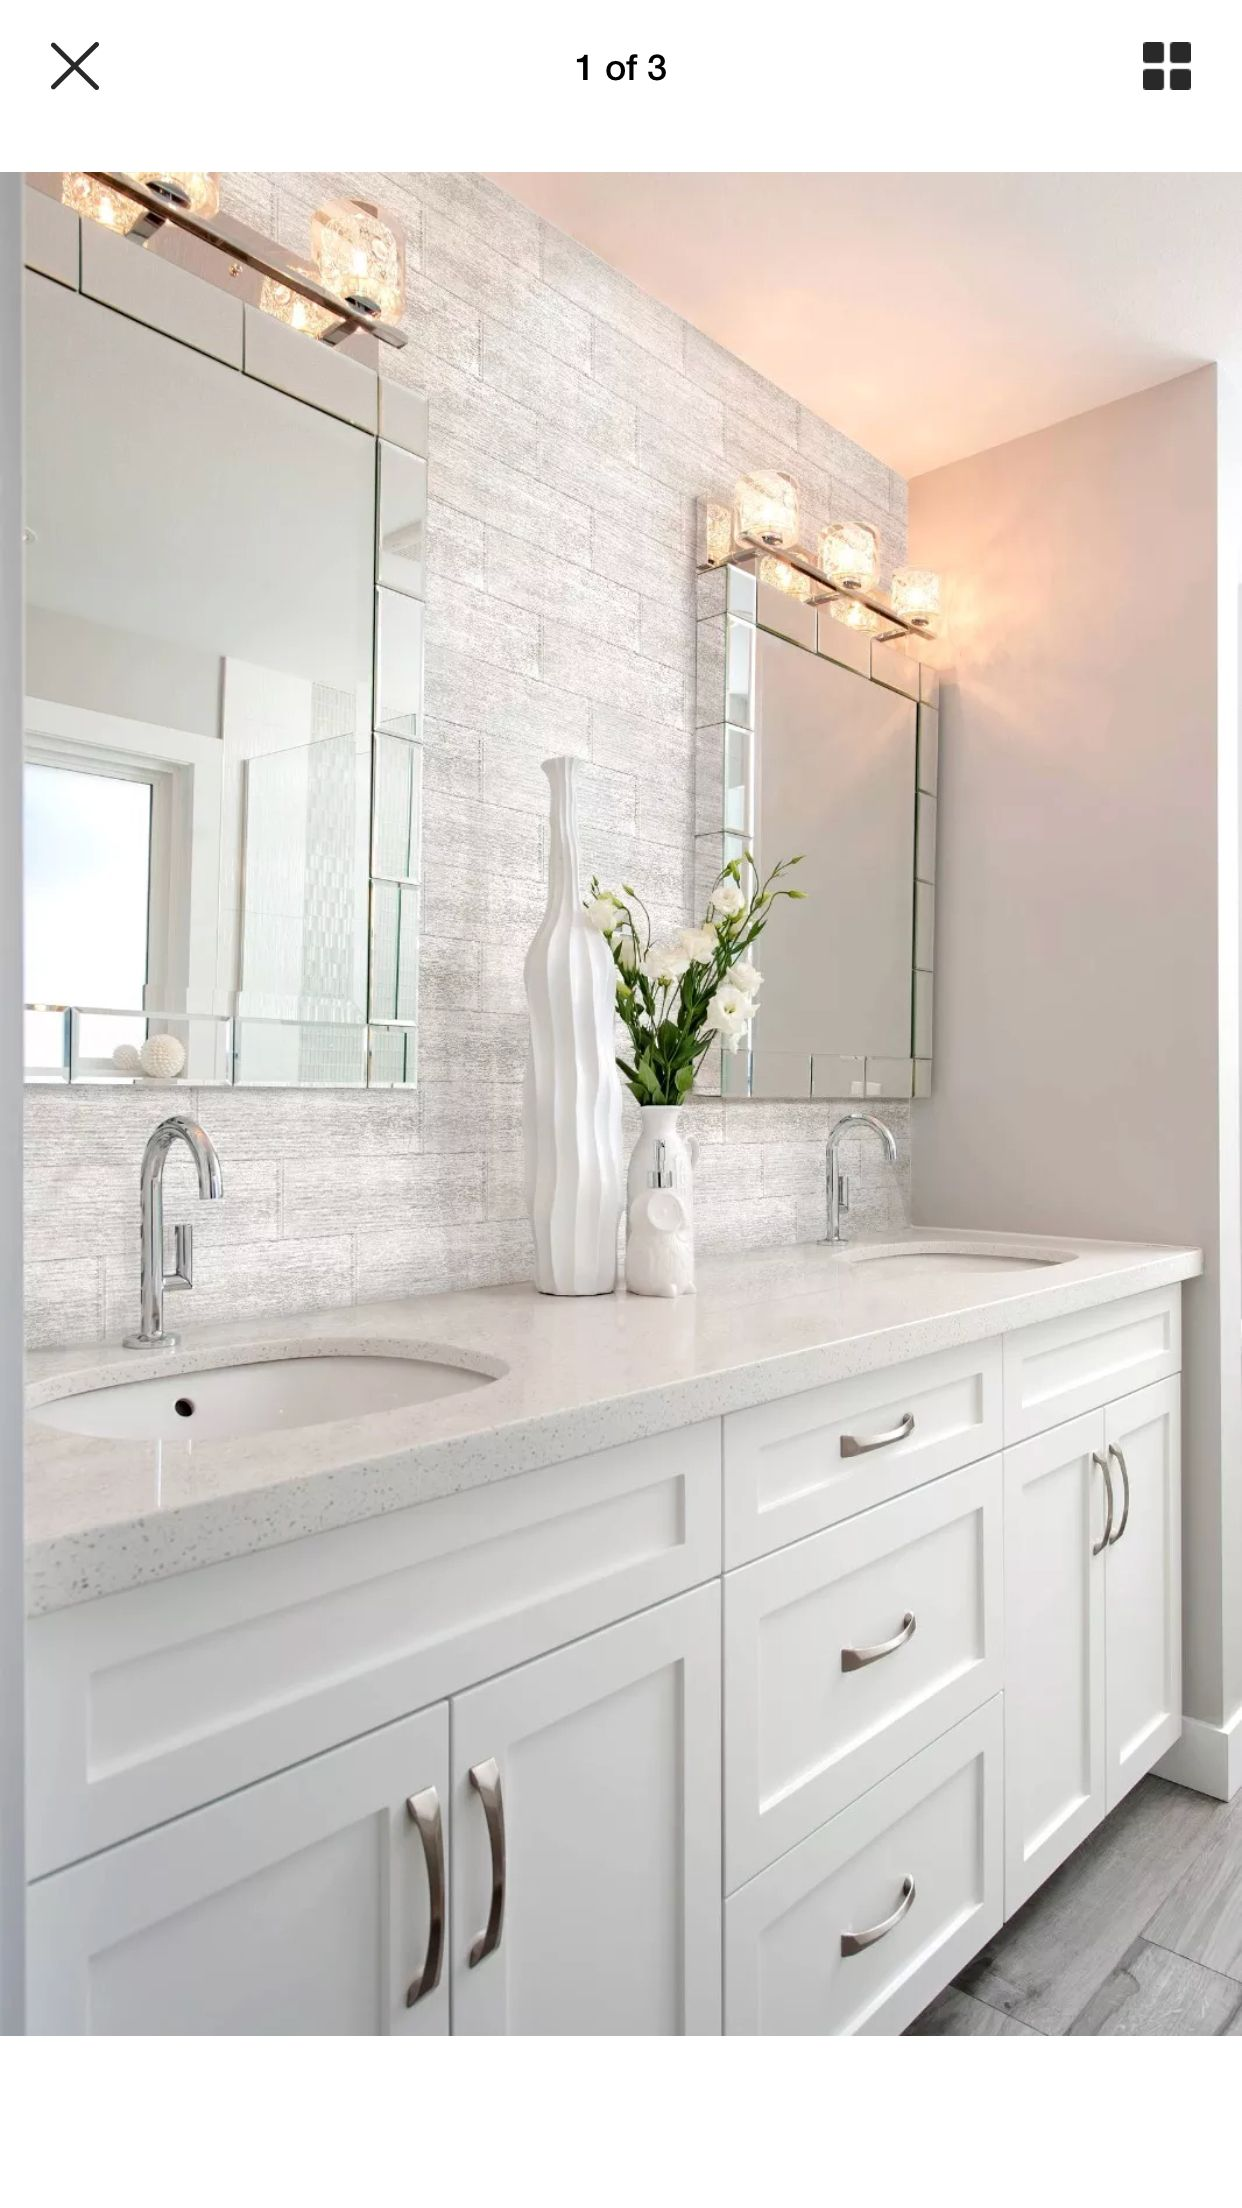 Pin By Natalie Pzz On Bathroom Ideas Double Vanity Bathroom Bathroom Vanity Designs Vanity Design